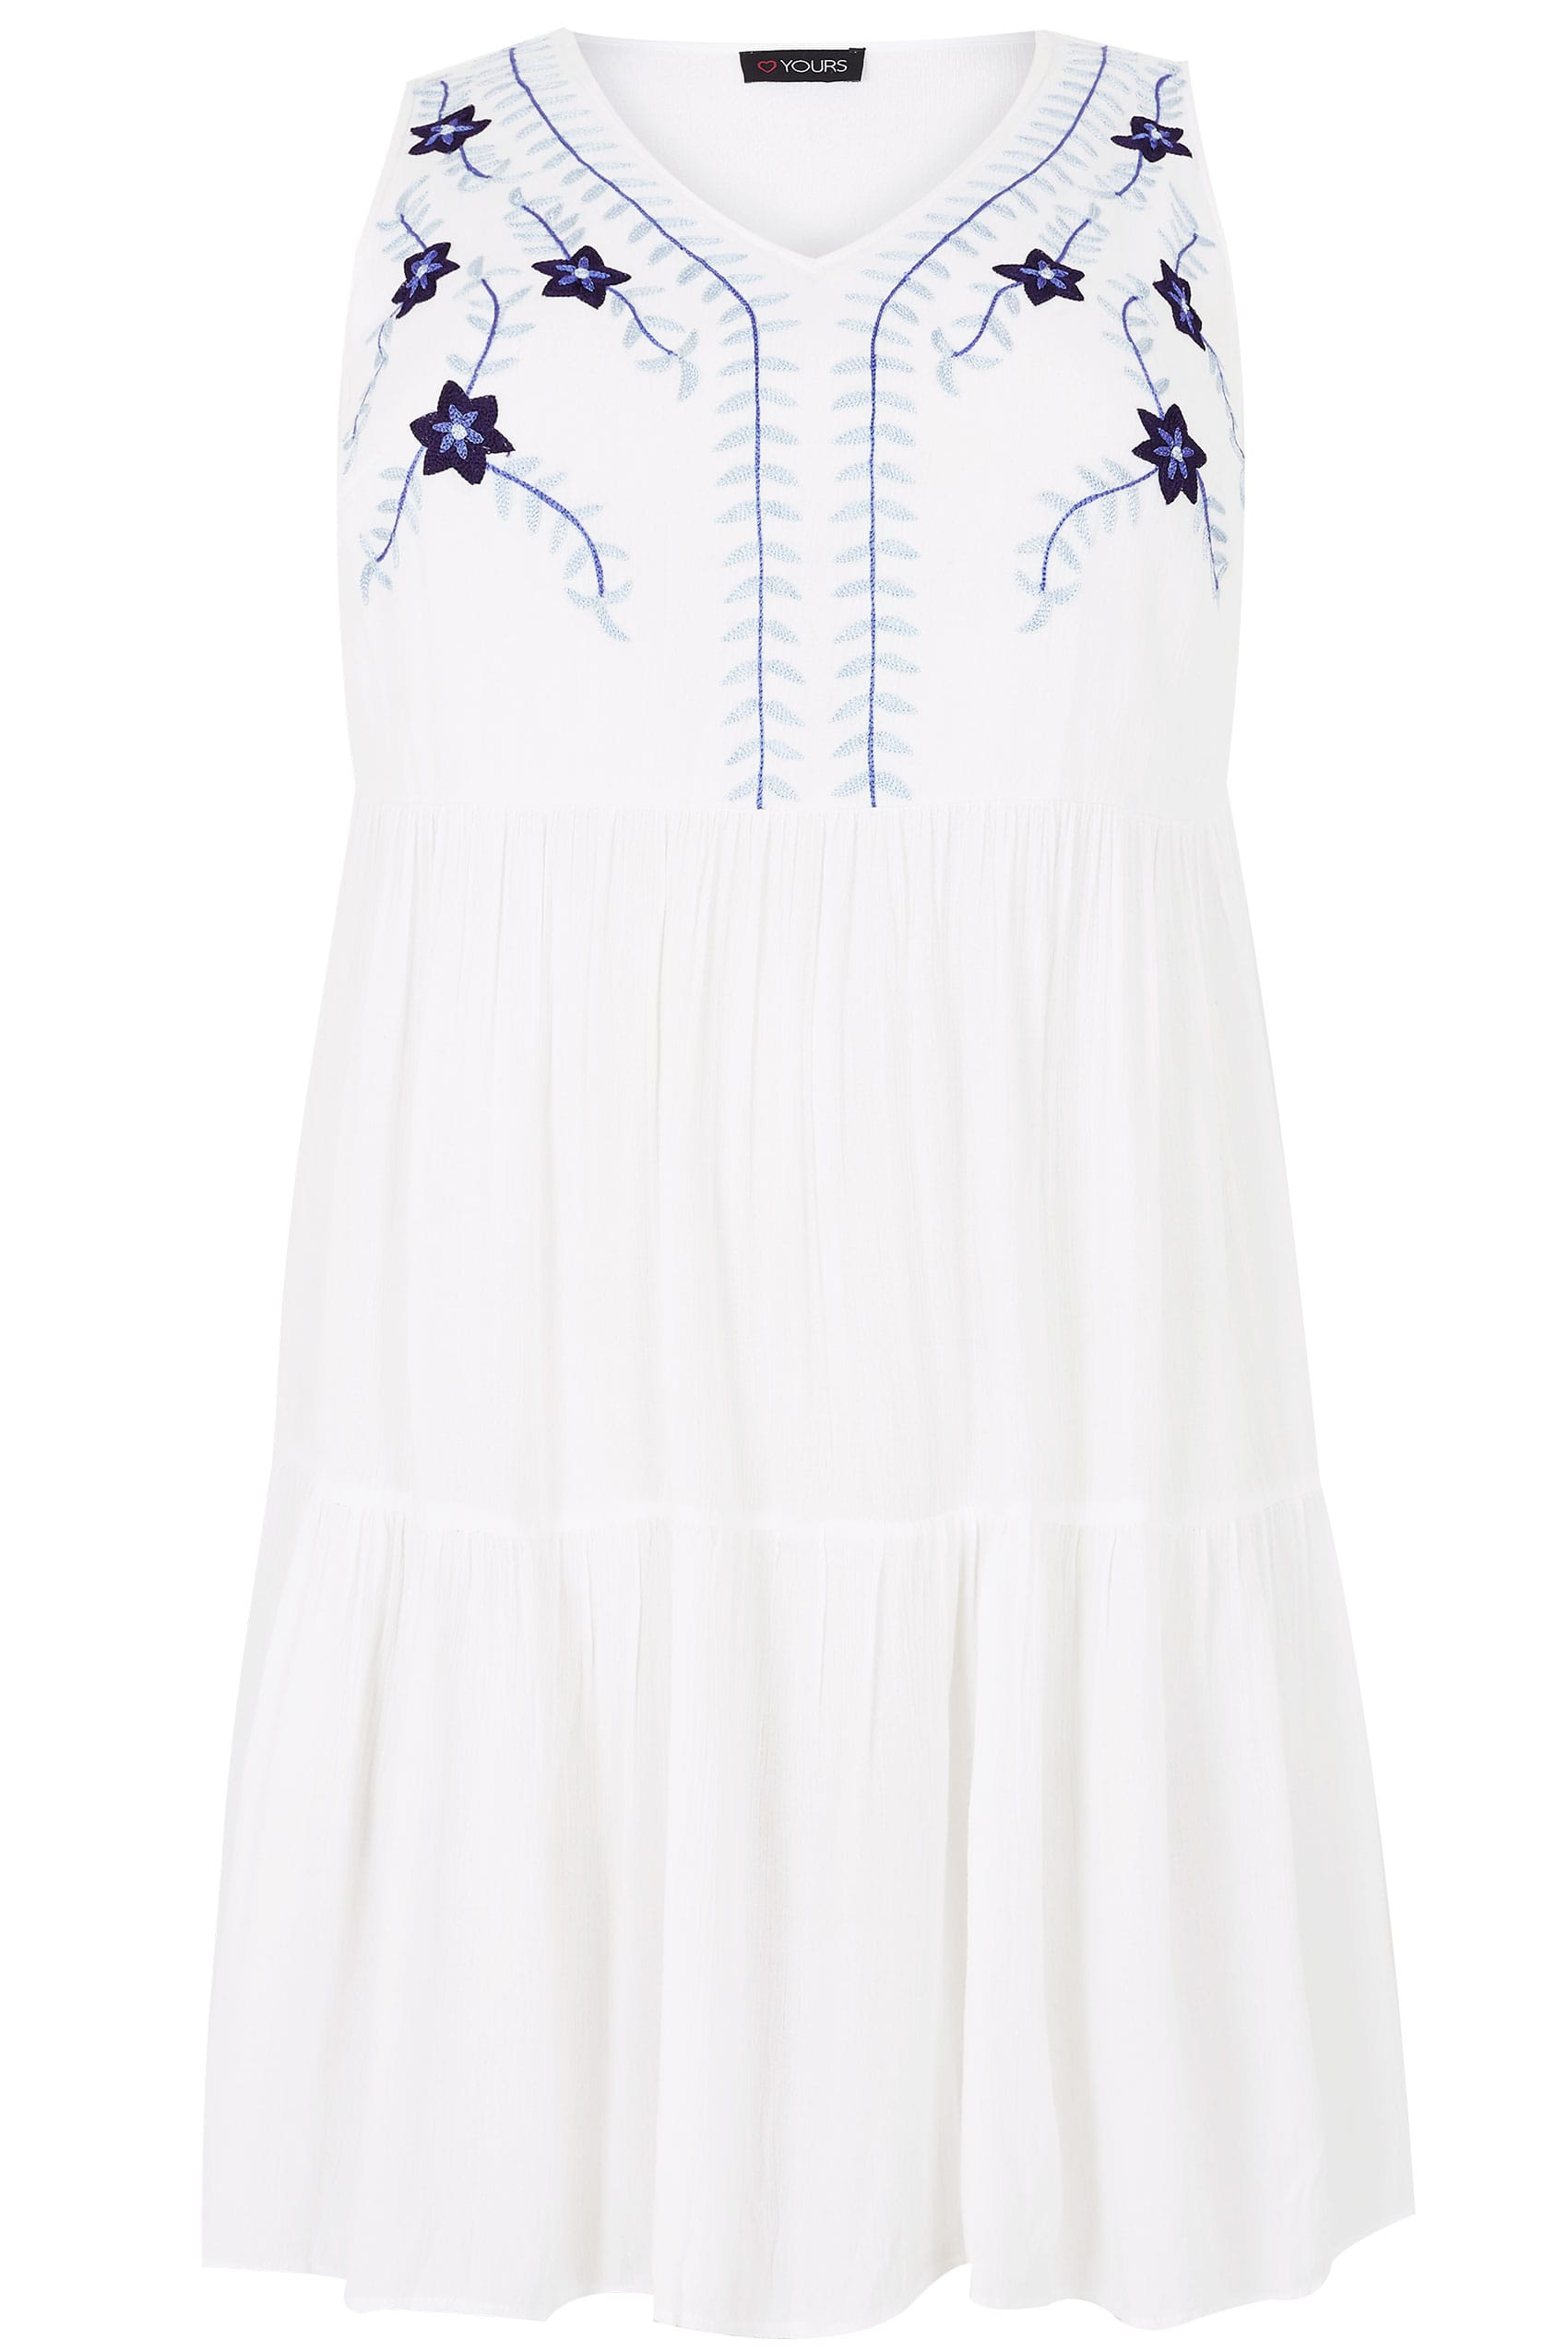 white  u0026 blue floral embroidered tiered longline top  plus